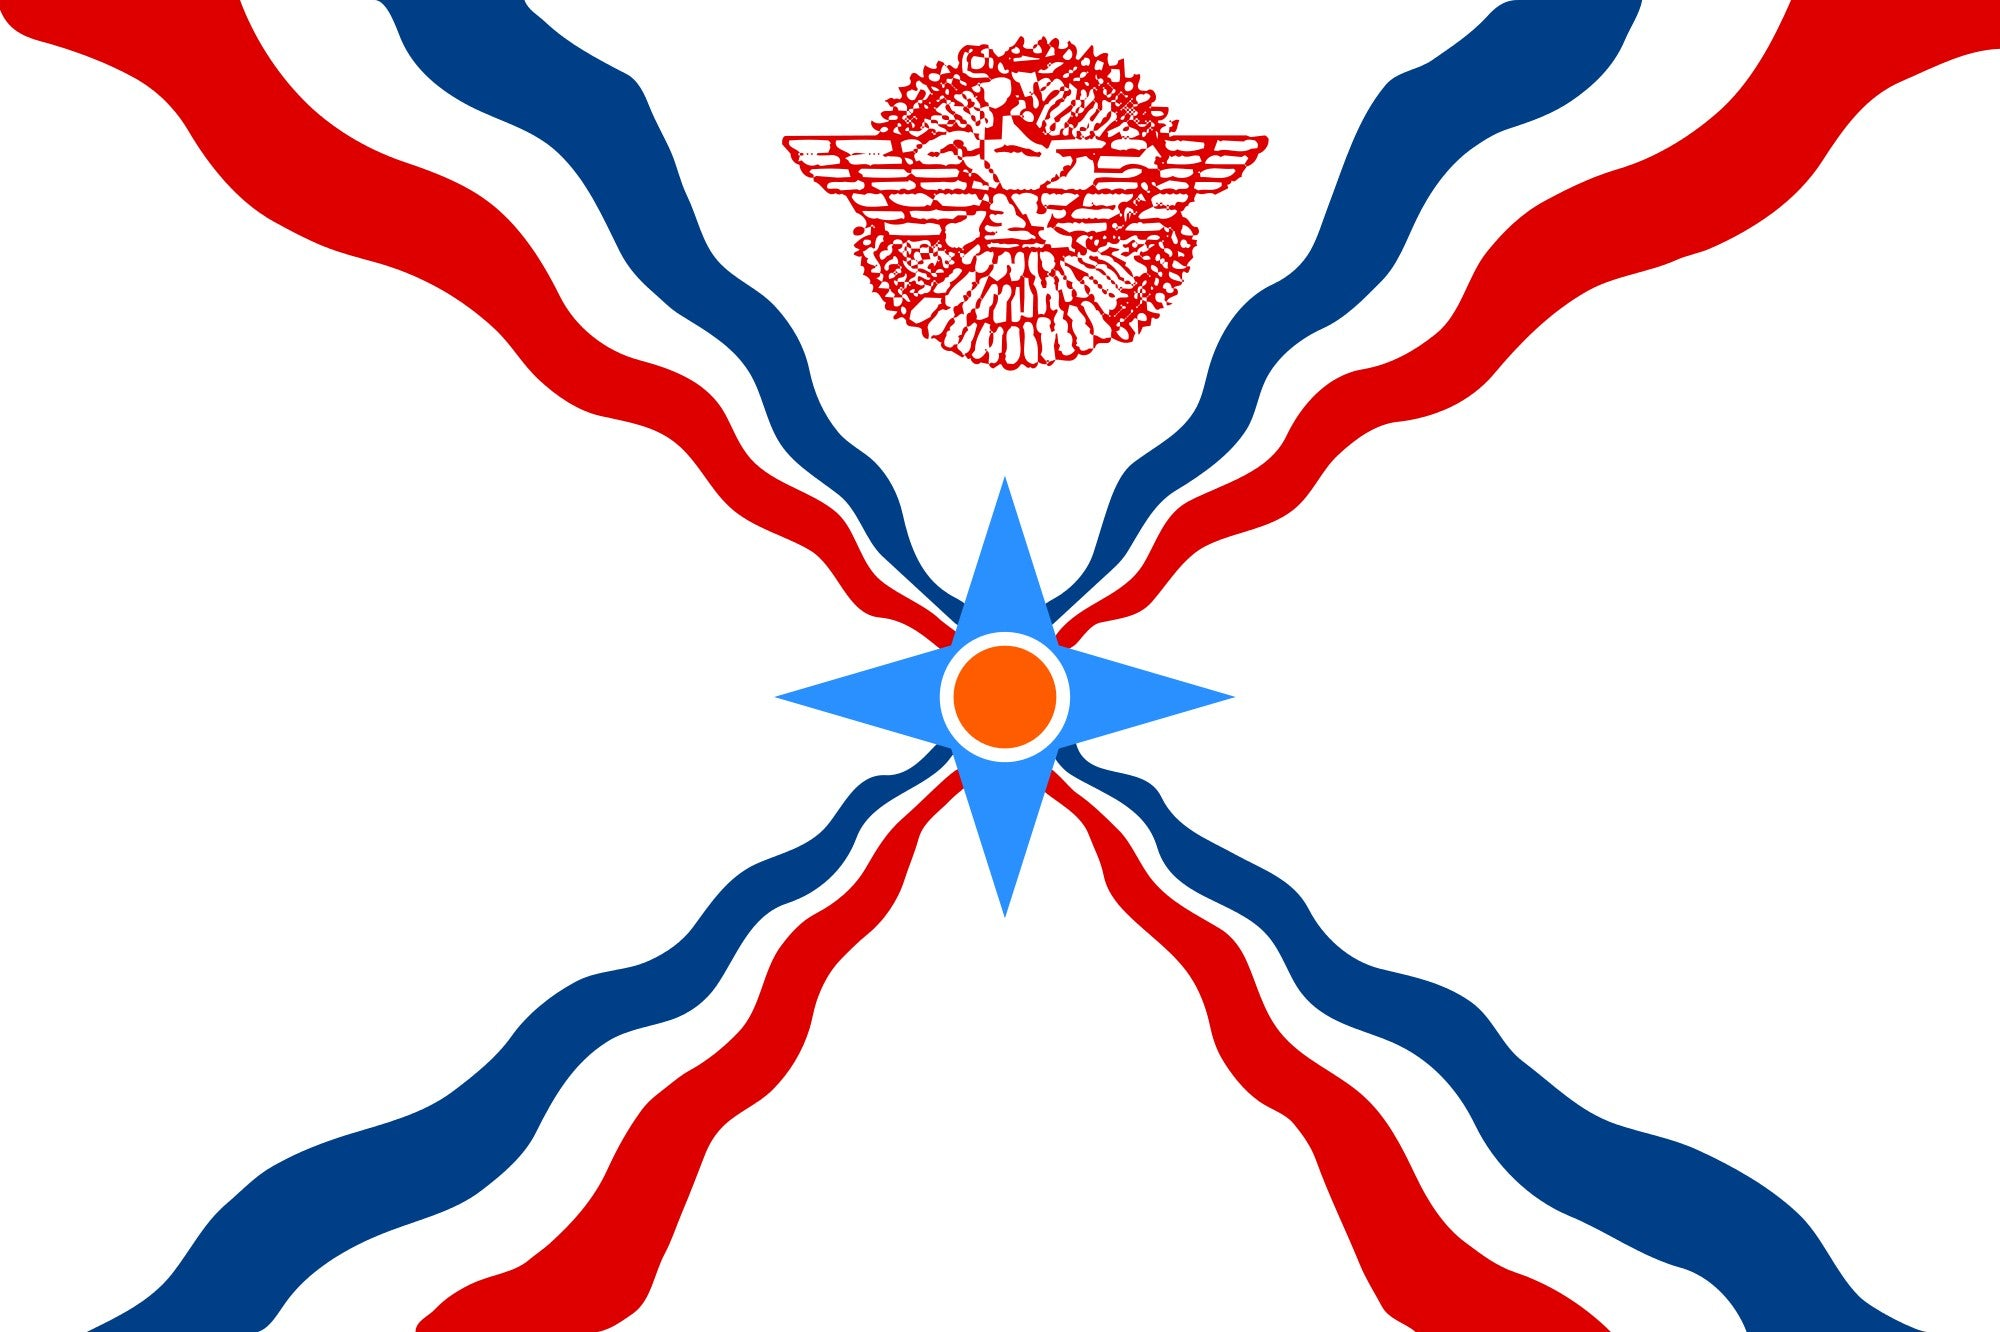 Assyria 2' x 3' Indoor Polyester State Flag